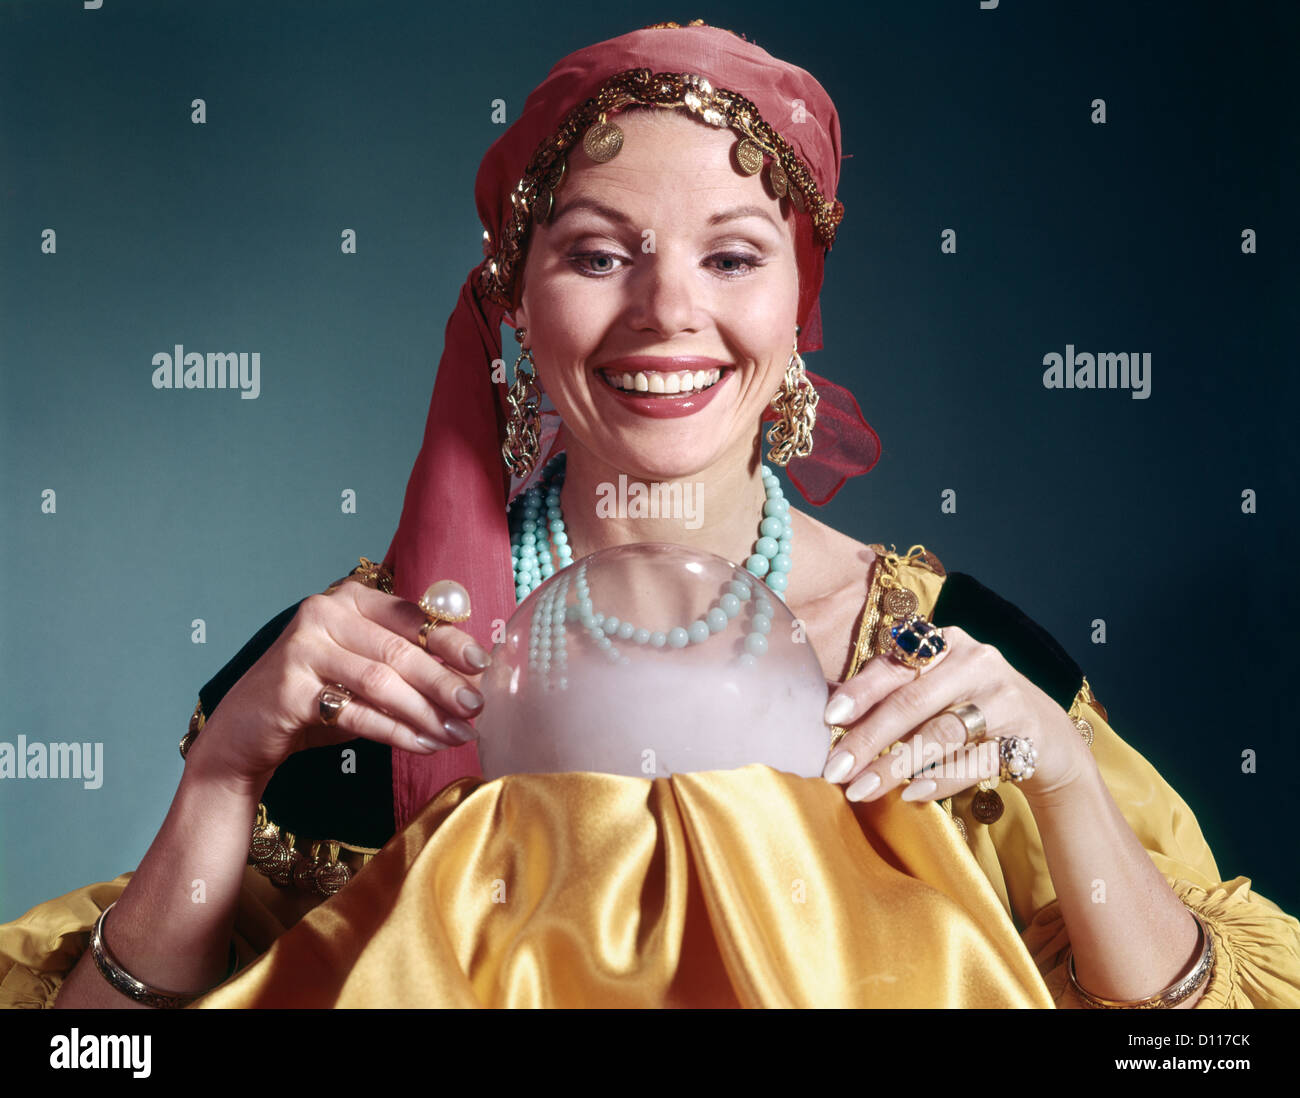 1960s WOMAN PORTRAIT CHARACTER CRYSTAL BALL FORTUNE TELLER COSTUME - Stock Image